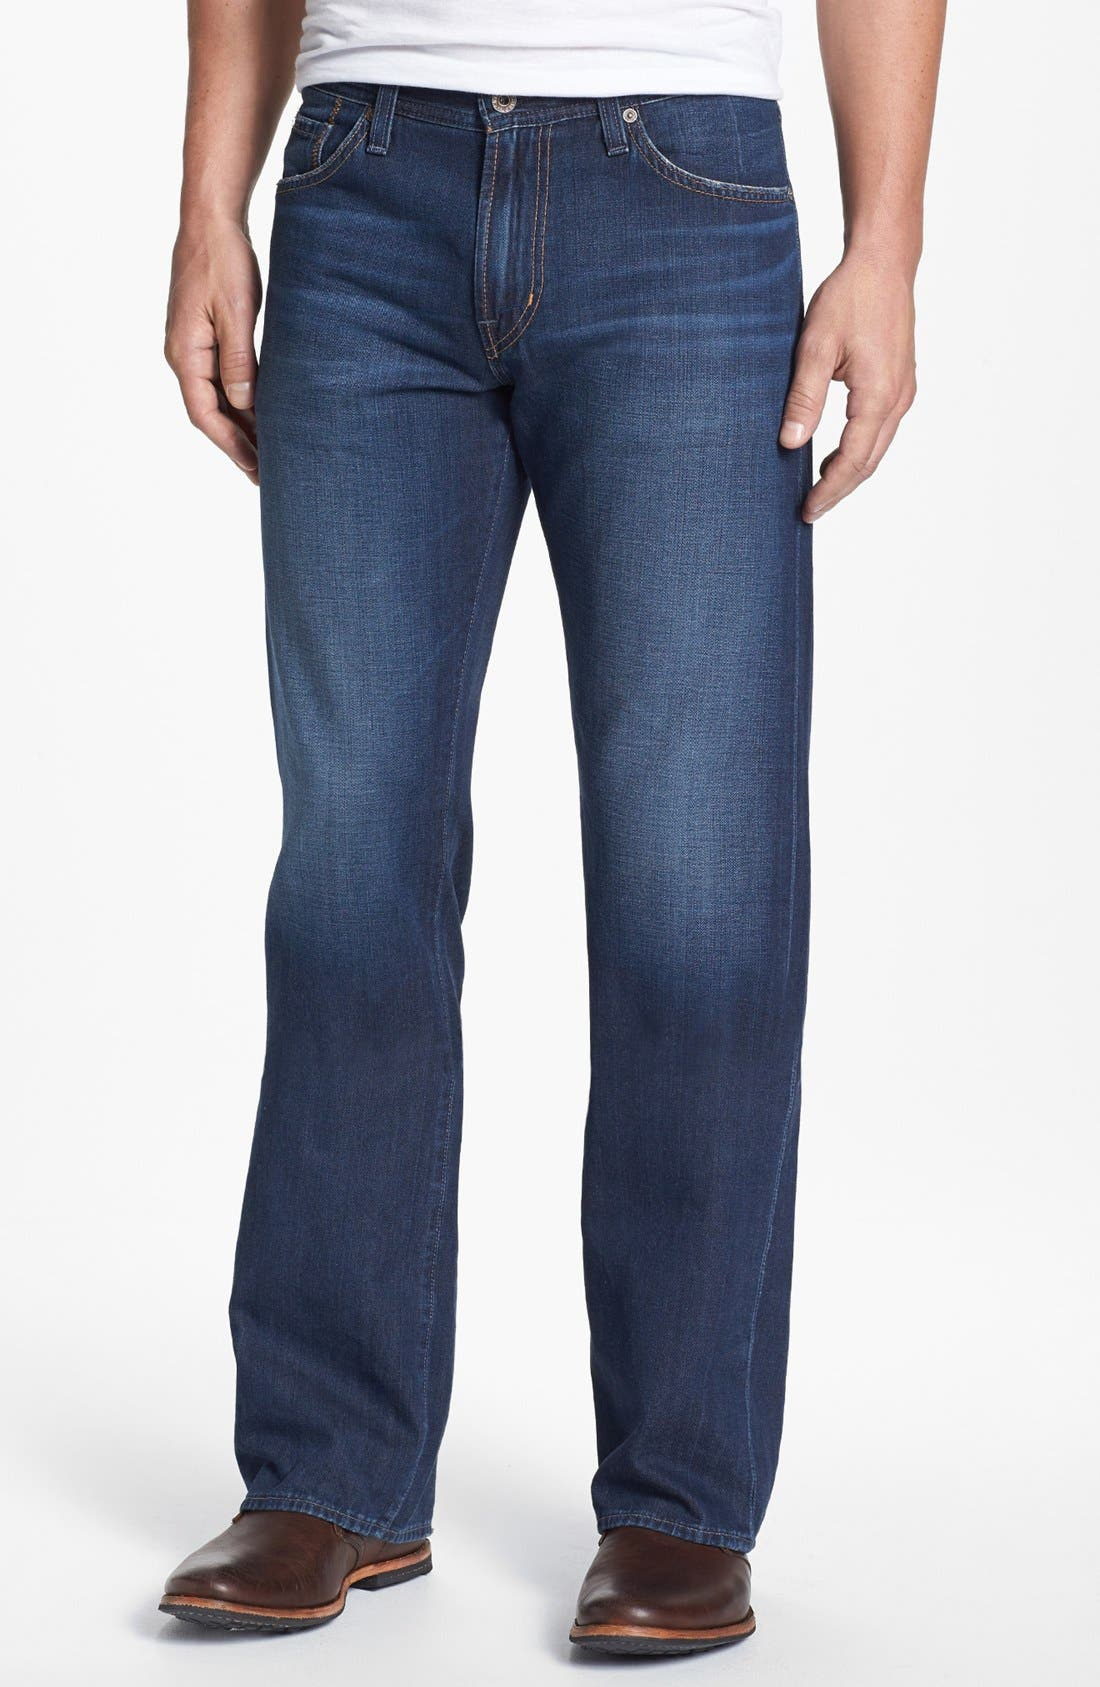 Alternate Image 1 Selected - AG 'Hero' Relaxed Fit Jeans (Parkway)